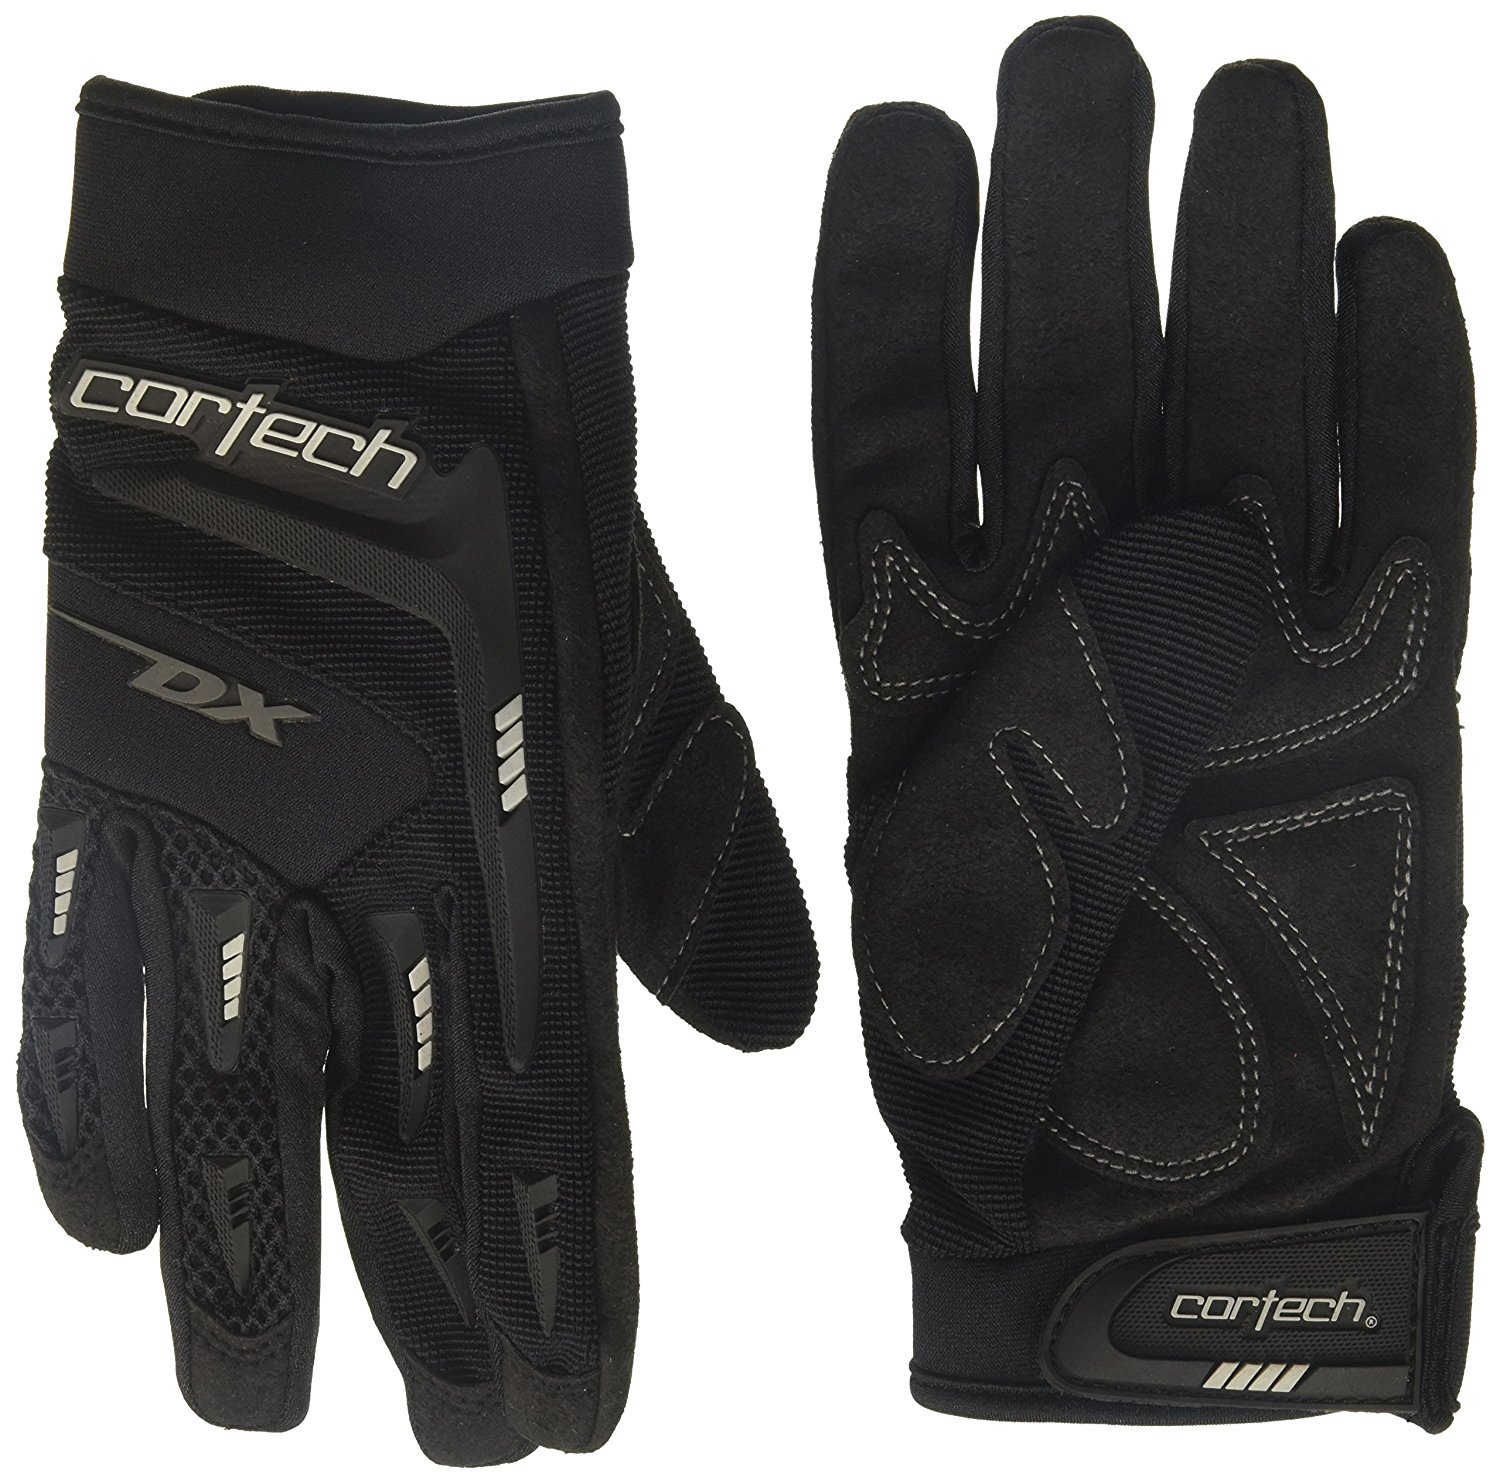 Women's DX 2 Glove(Black, Medium), 1 Pack, Clarino 0.8mm palm material with internal foam padding is ergonomically configured to increase grip.., By Cortech from USA